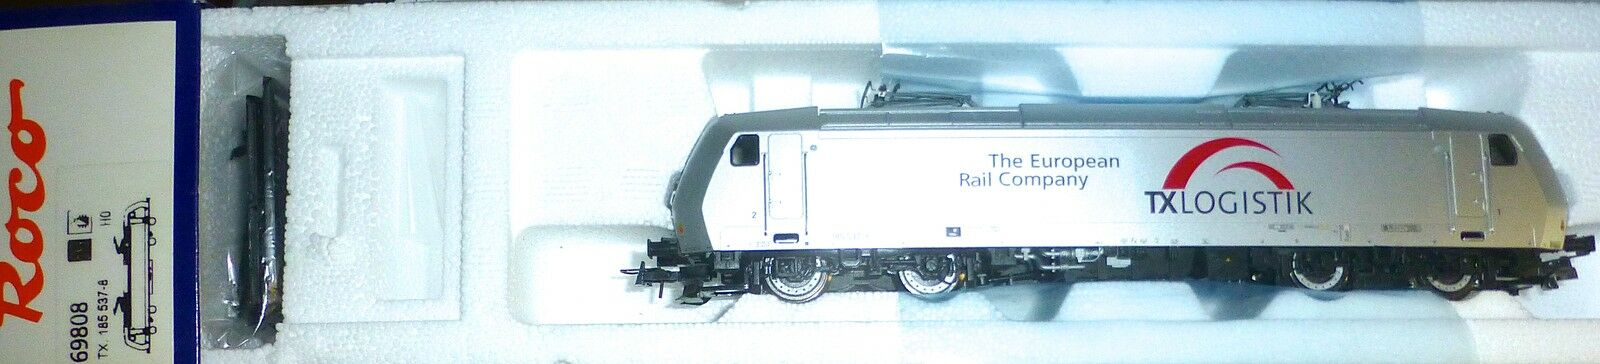 185 TX Logistics ELOK EP V for Märklin AC Digital Roco 69808 NEW 1 87 KC3 KG12 µ